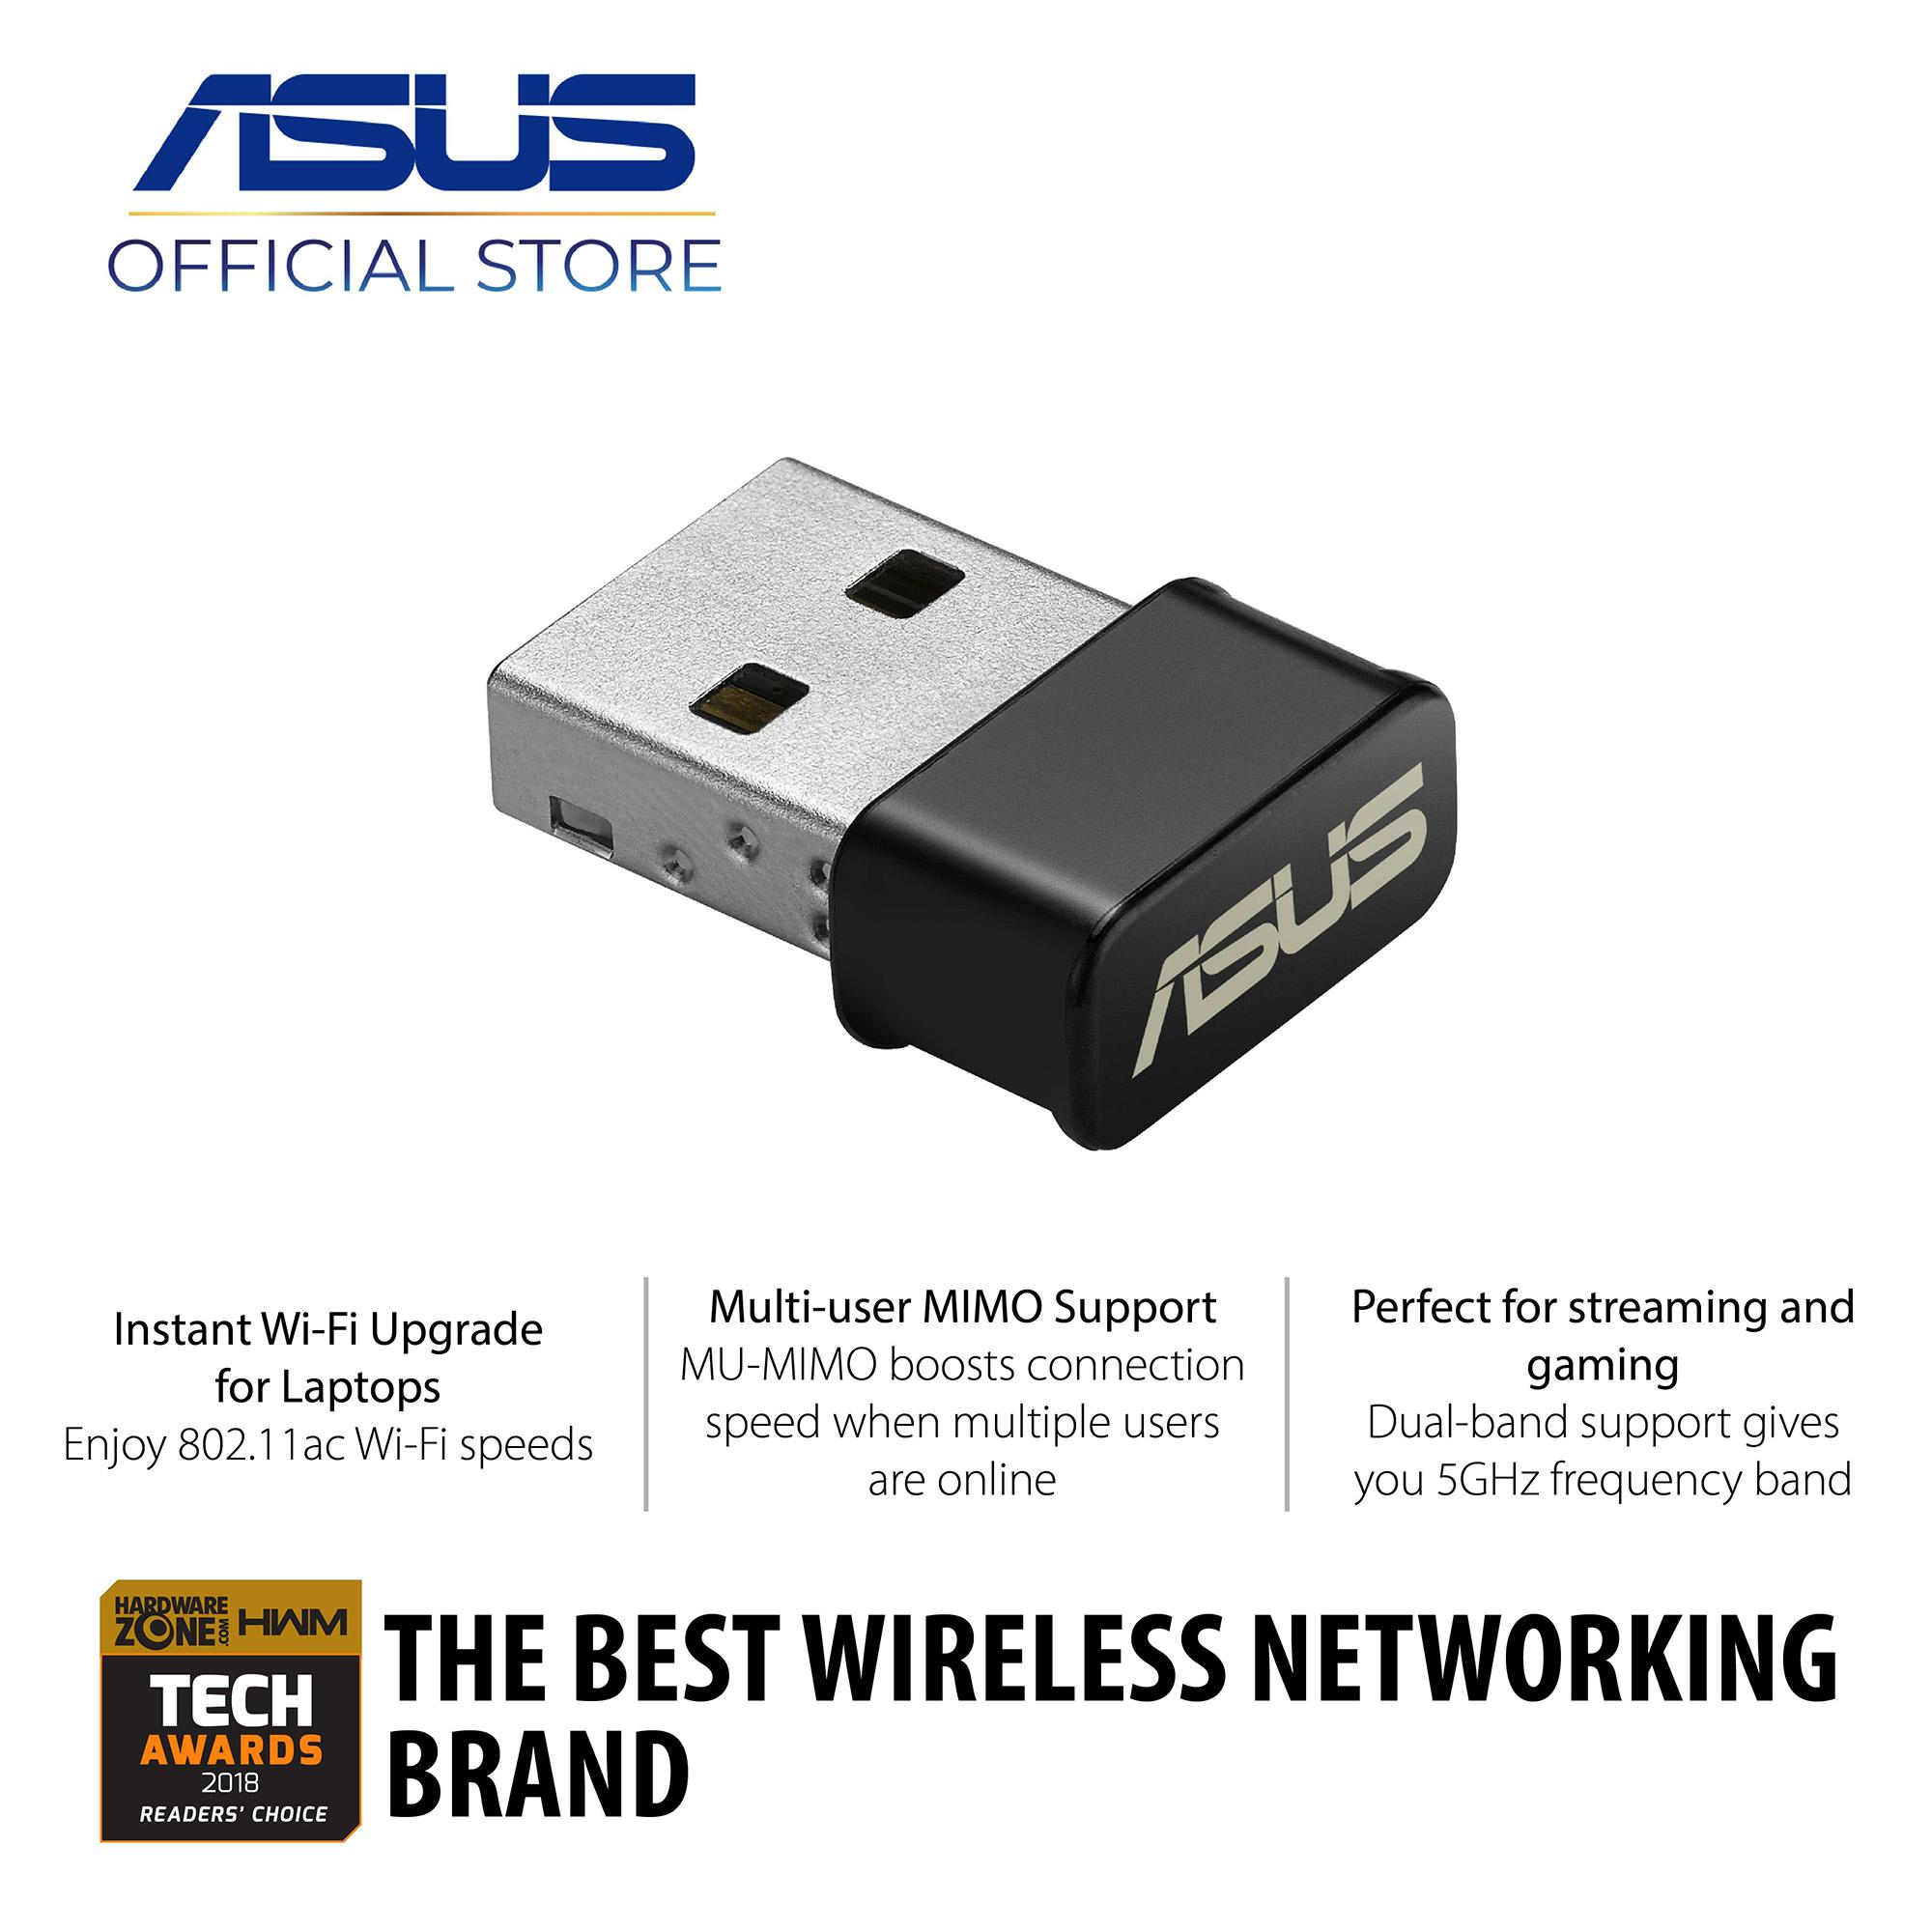 Network Adapters For Sale Internet Prices Brands Male Usb To Ps 2 Wiring Diagram Free Download Asus Ac53 Nano Ac1200 Dual Band Wi Fi Adapter